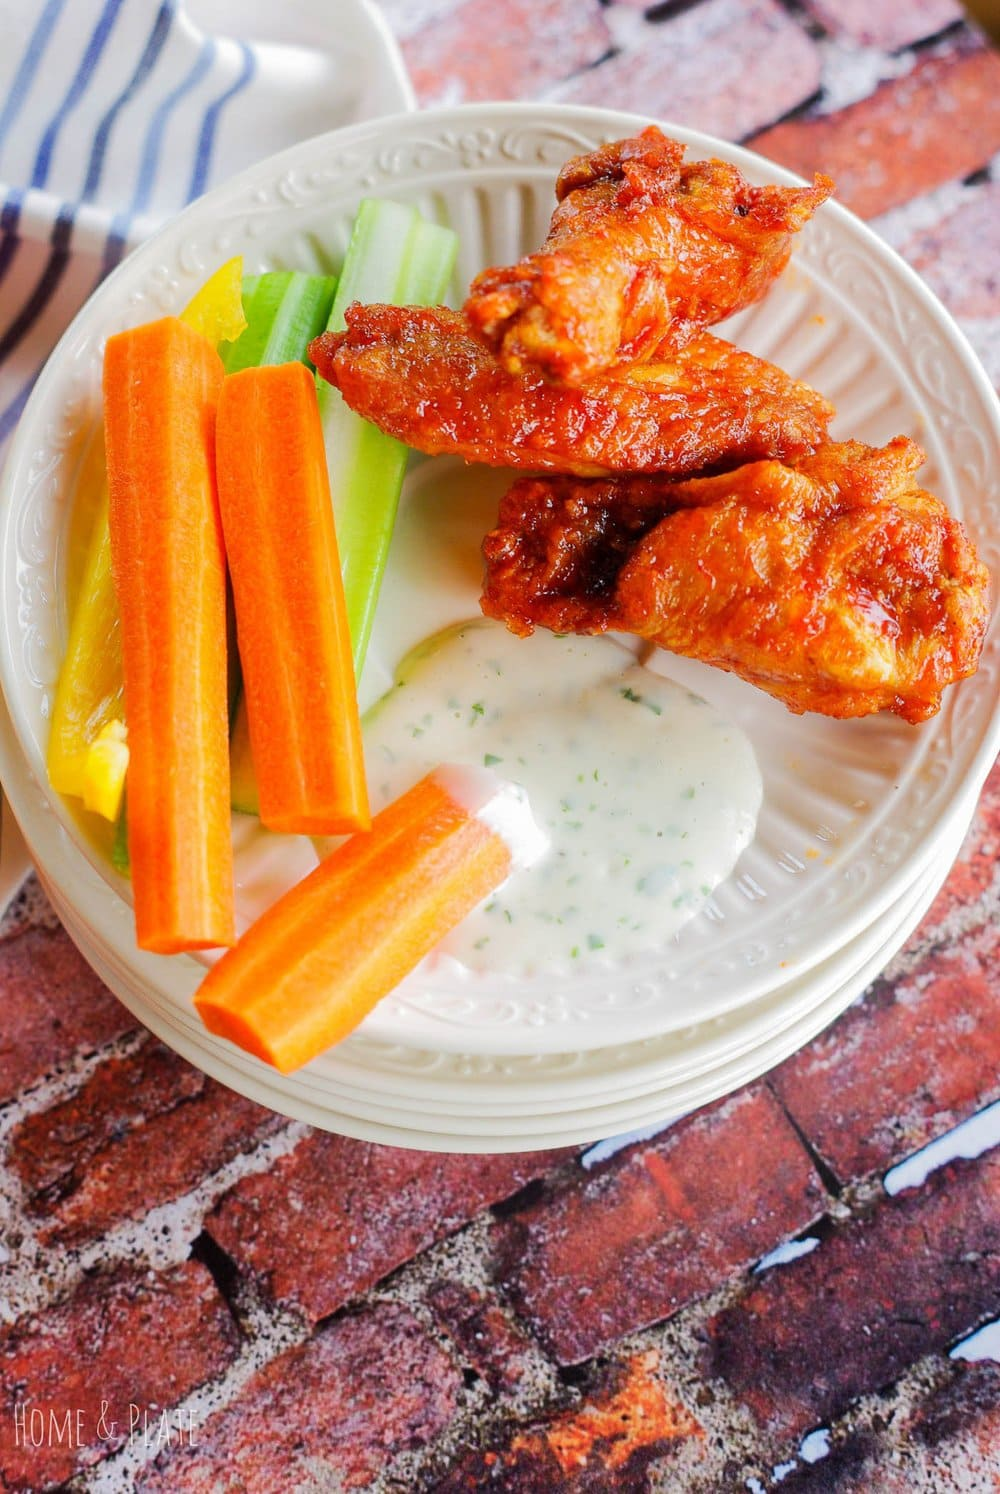 #Ad - Cilantro Ranch Dipping Sauce - for wings & veggies   www.homeandplate.com   It